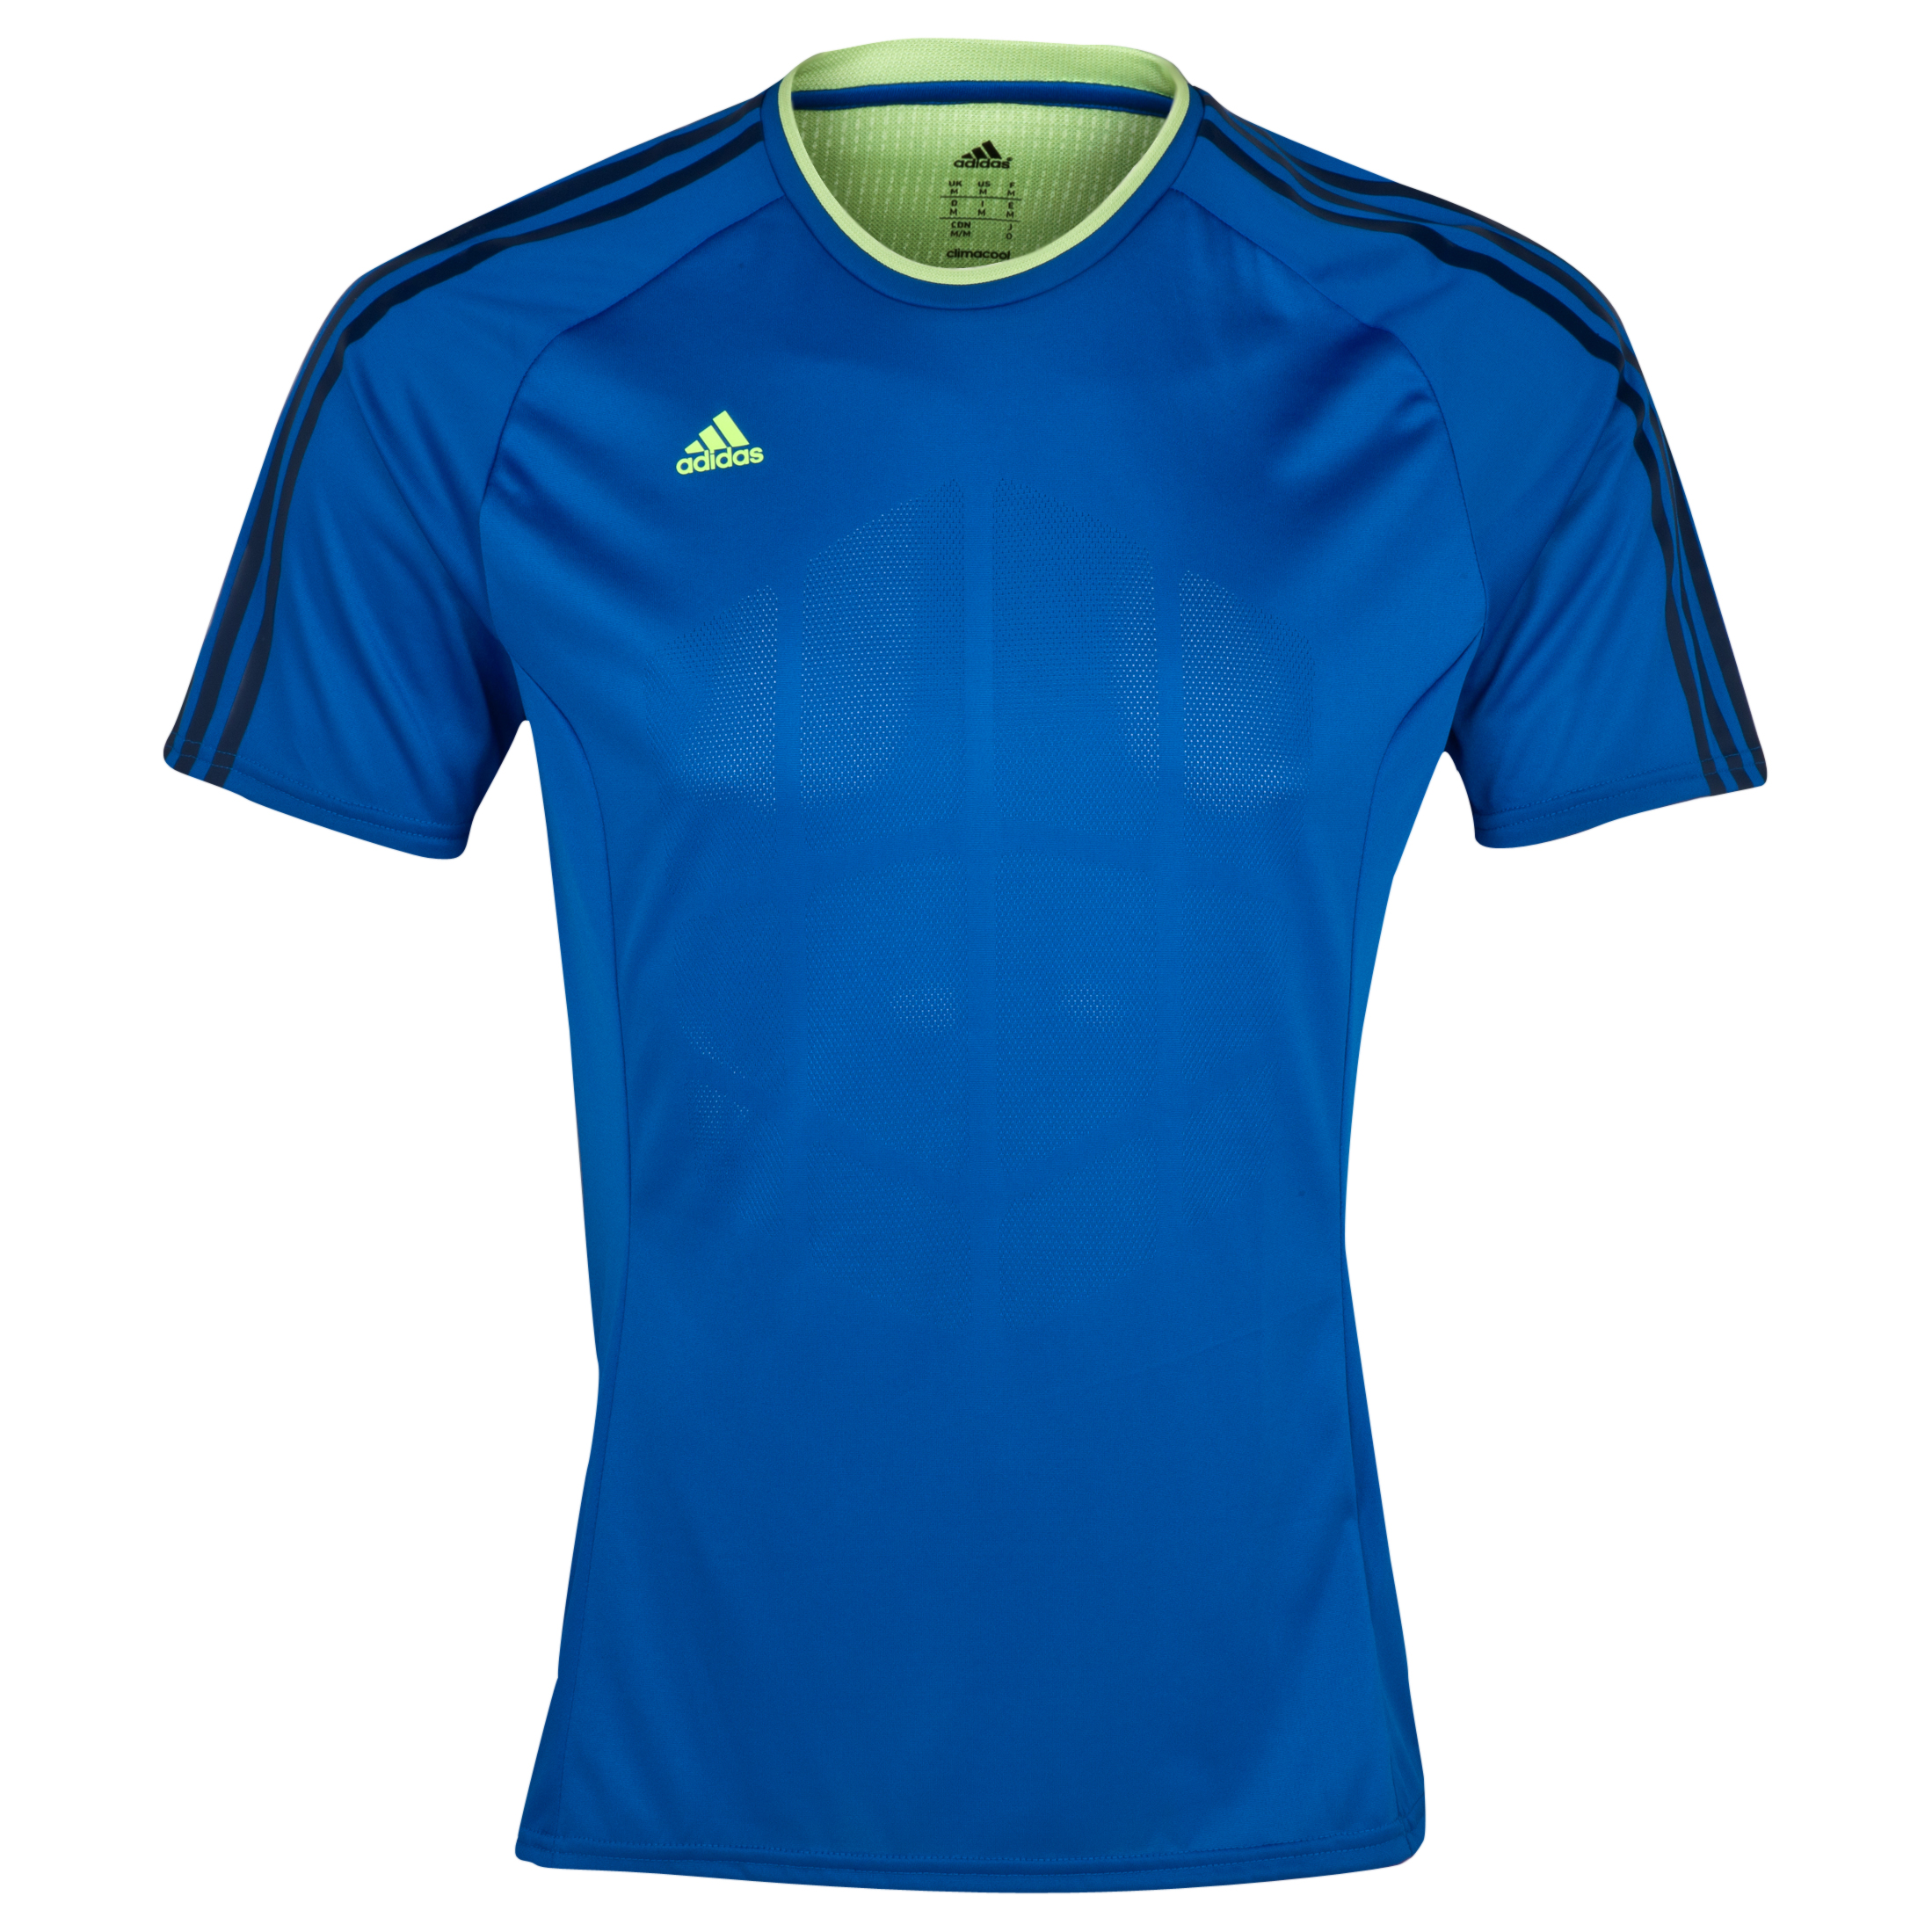 Adidas Nitrocharge Climacool Training T-shirt Blue